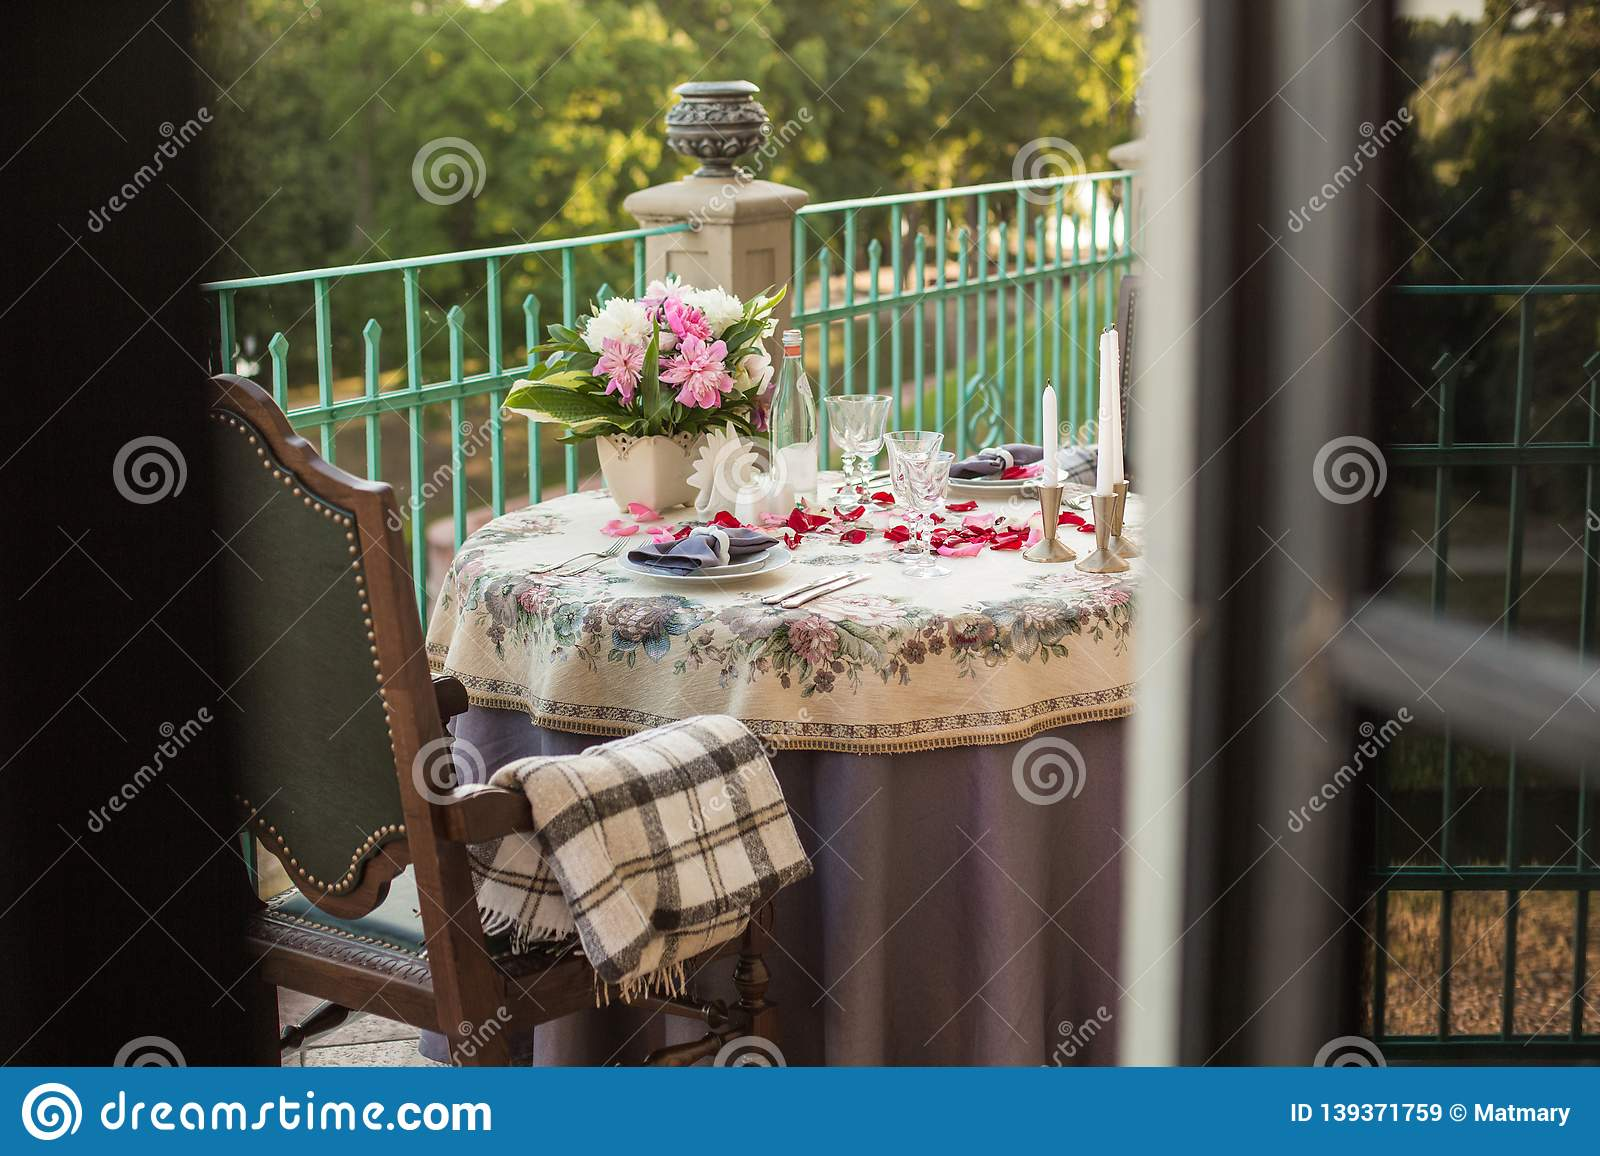 Romantic decor of the festive table in the restaurant with candles, flowers, rose petals